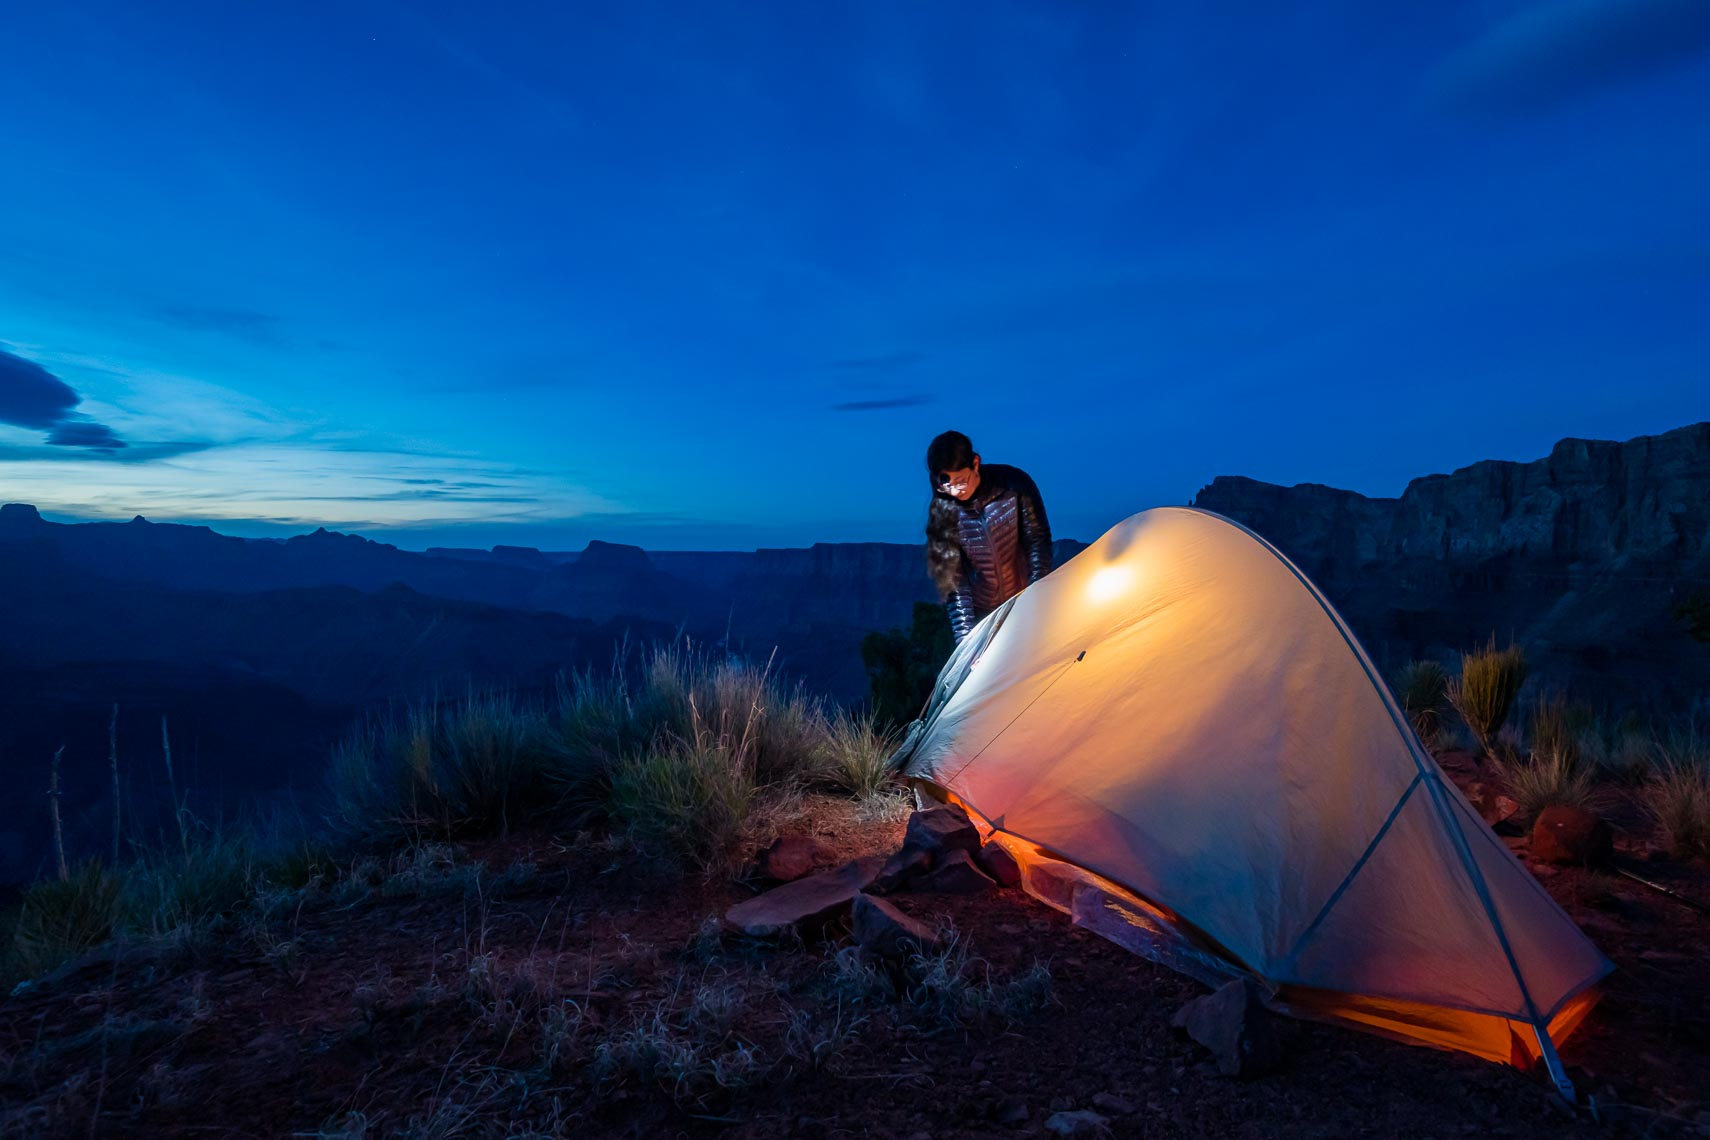 Lit Tent Ultralight Backpacking Grand Canyon | Michael DeYoung